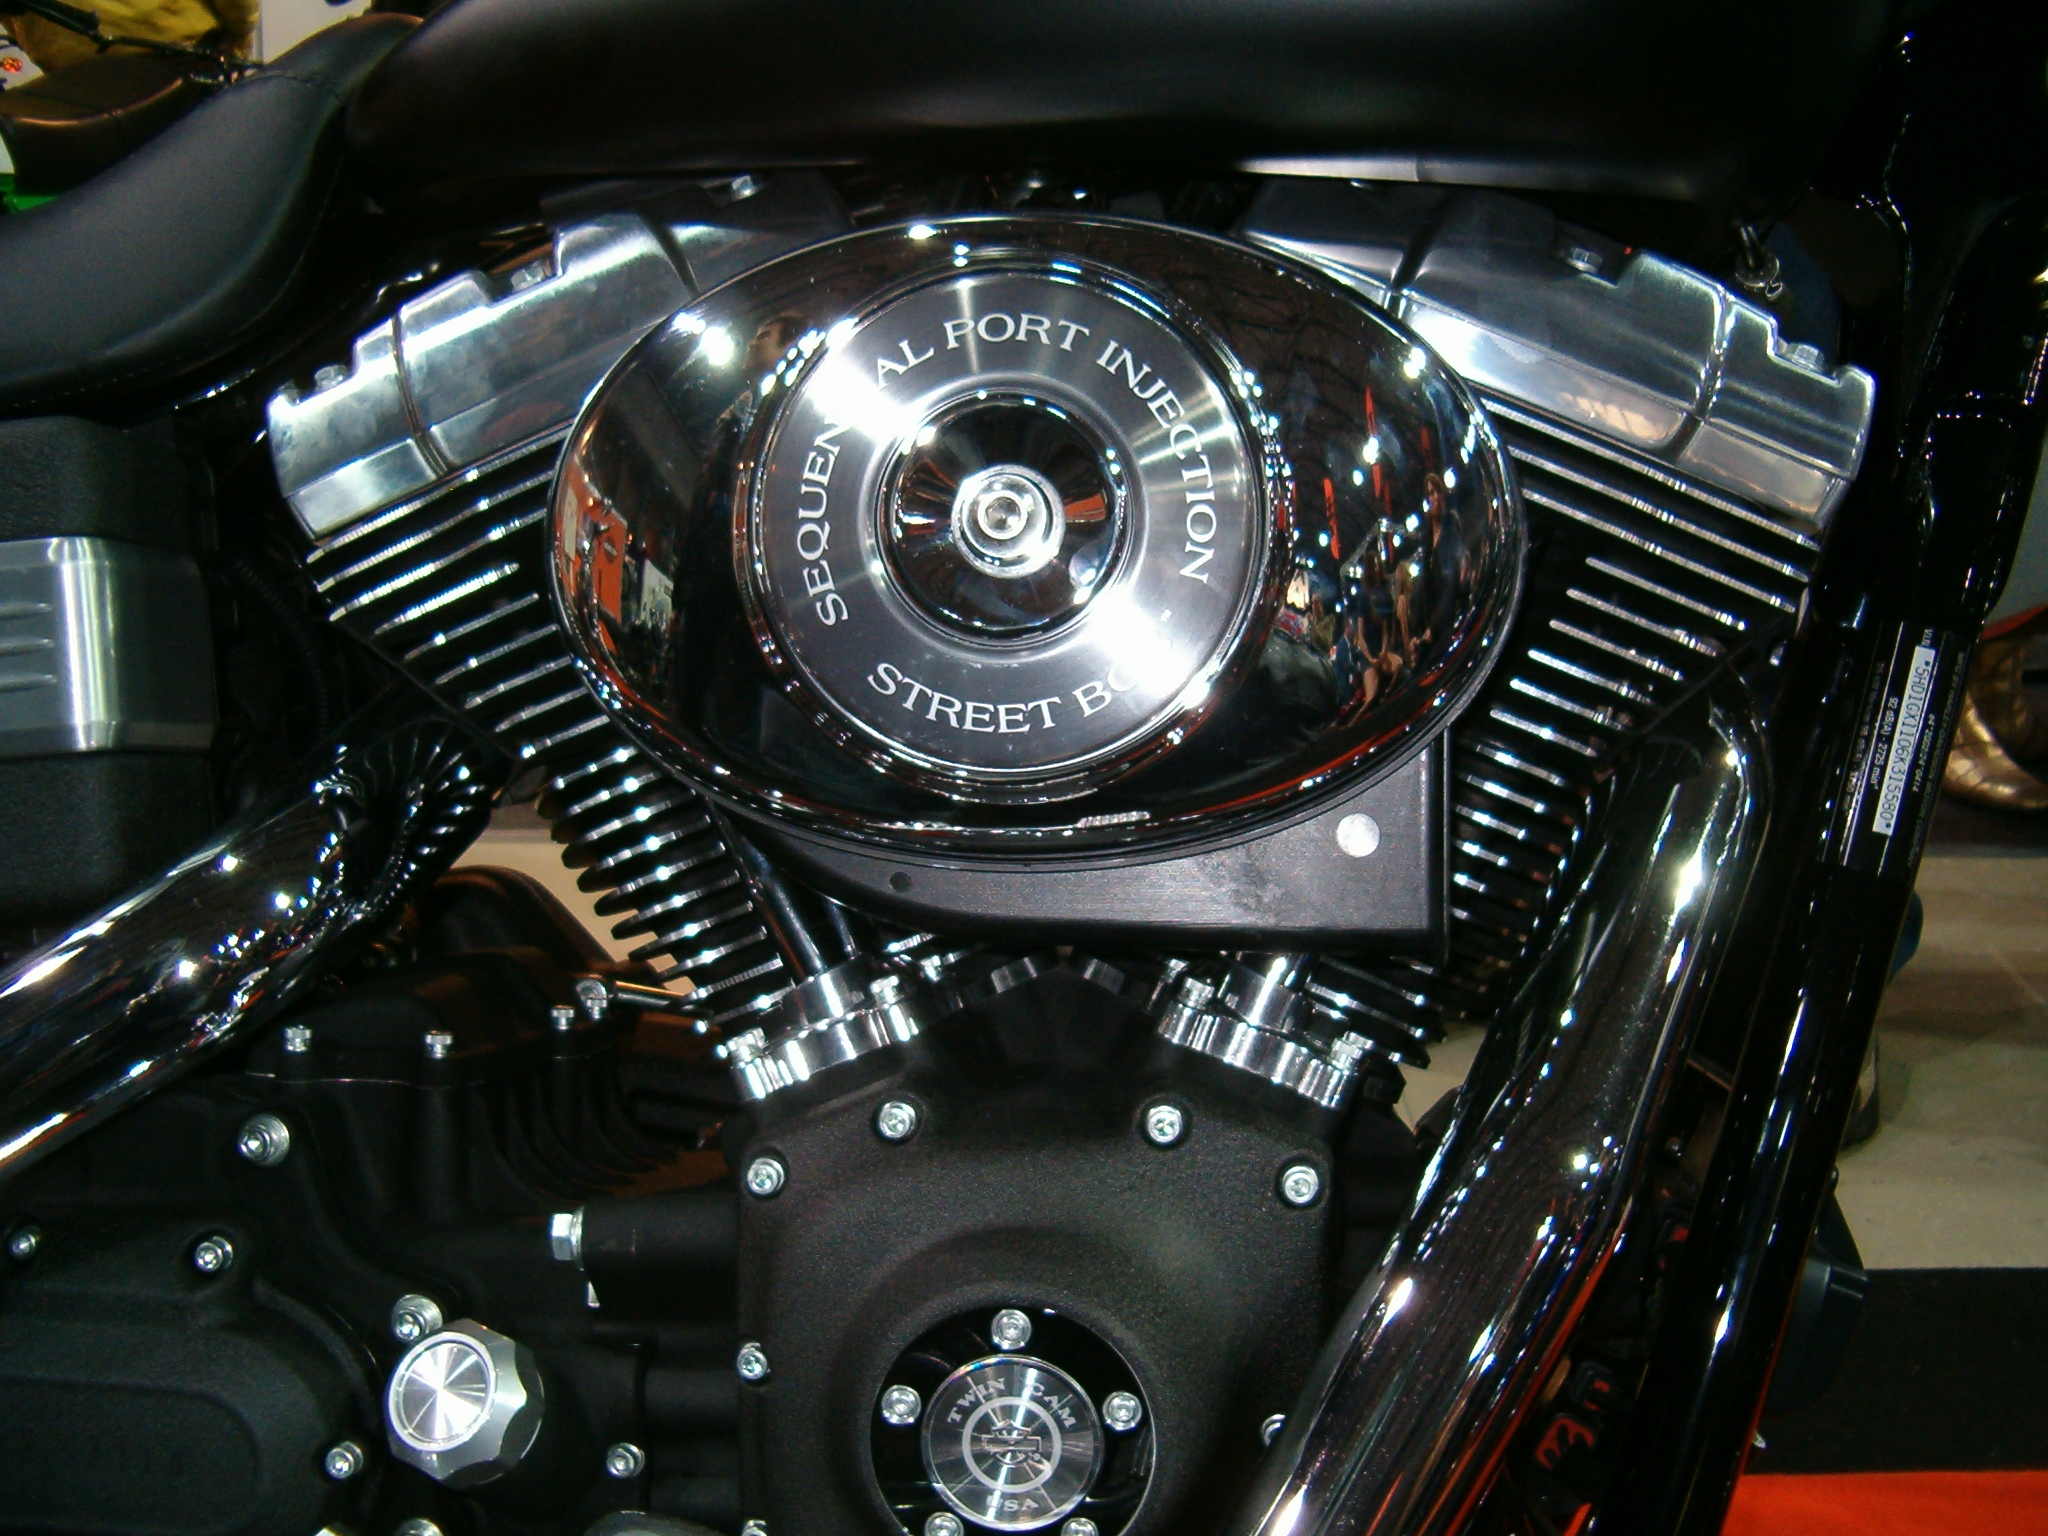 Harley-Davidson Twin Cam engine